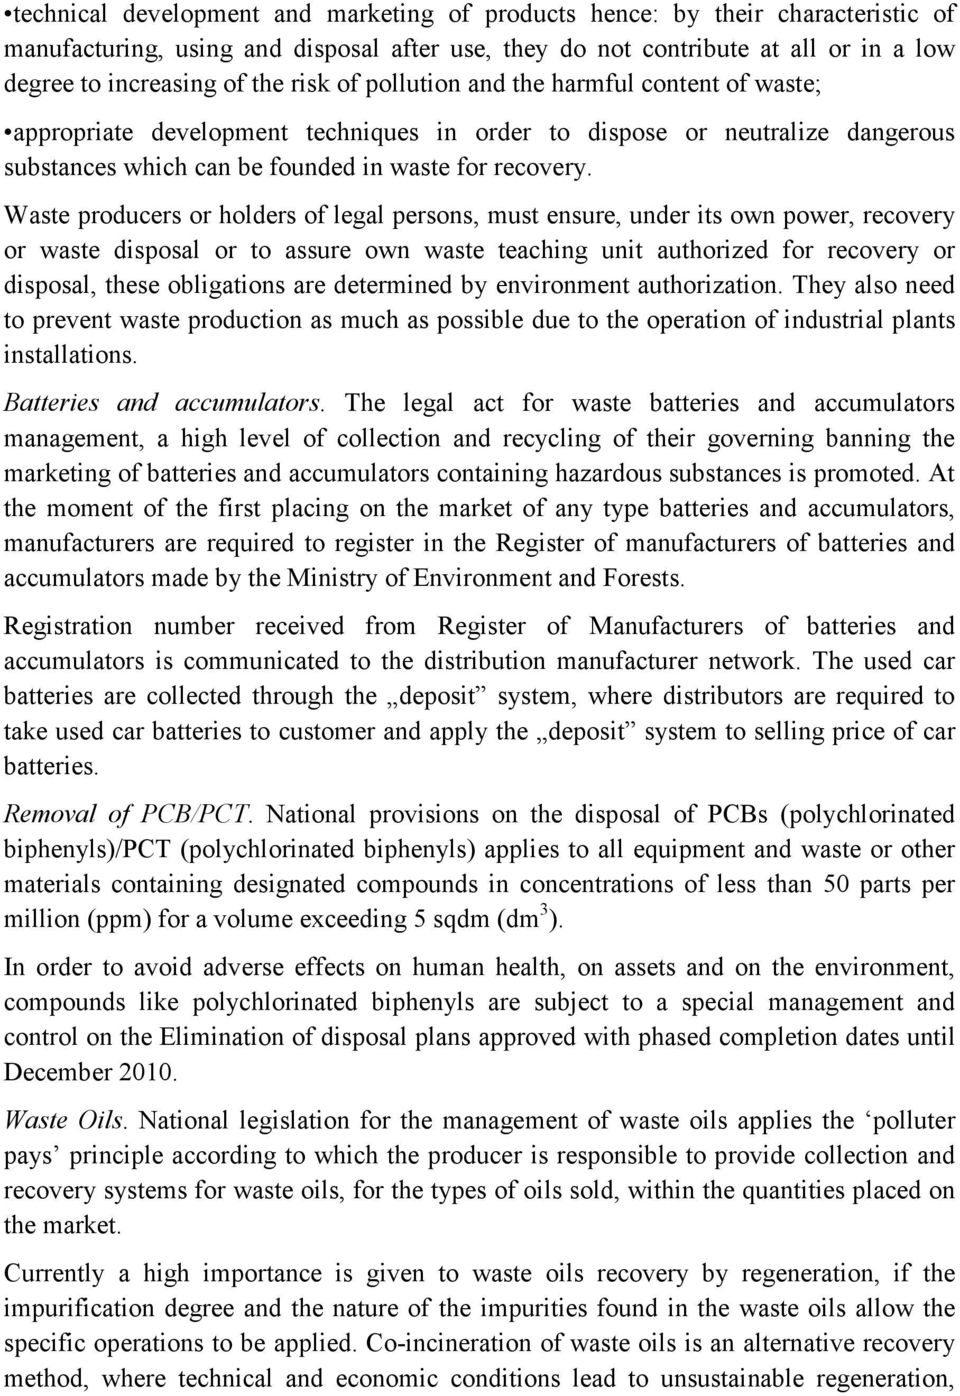 Waste producers or holders of legal persons, must ensure, under its own power, recovery or waste disposal or to assure own waste teaching unit authorized for recovery or disposal, these obligations